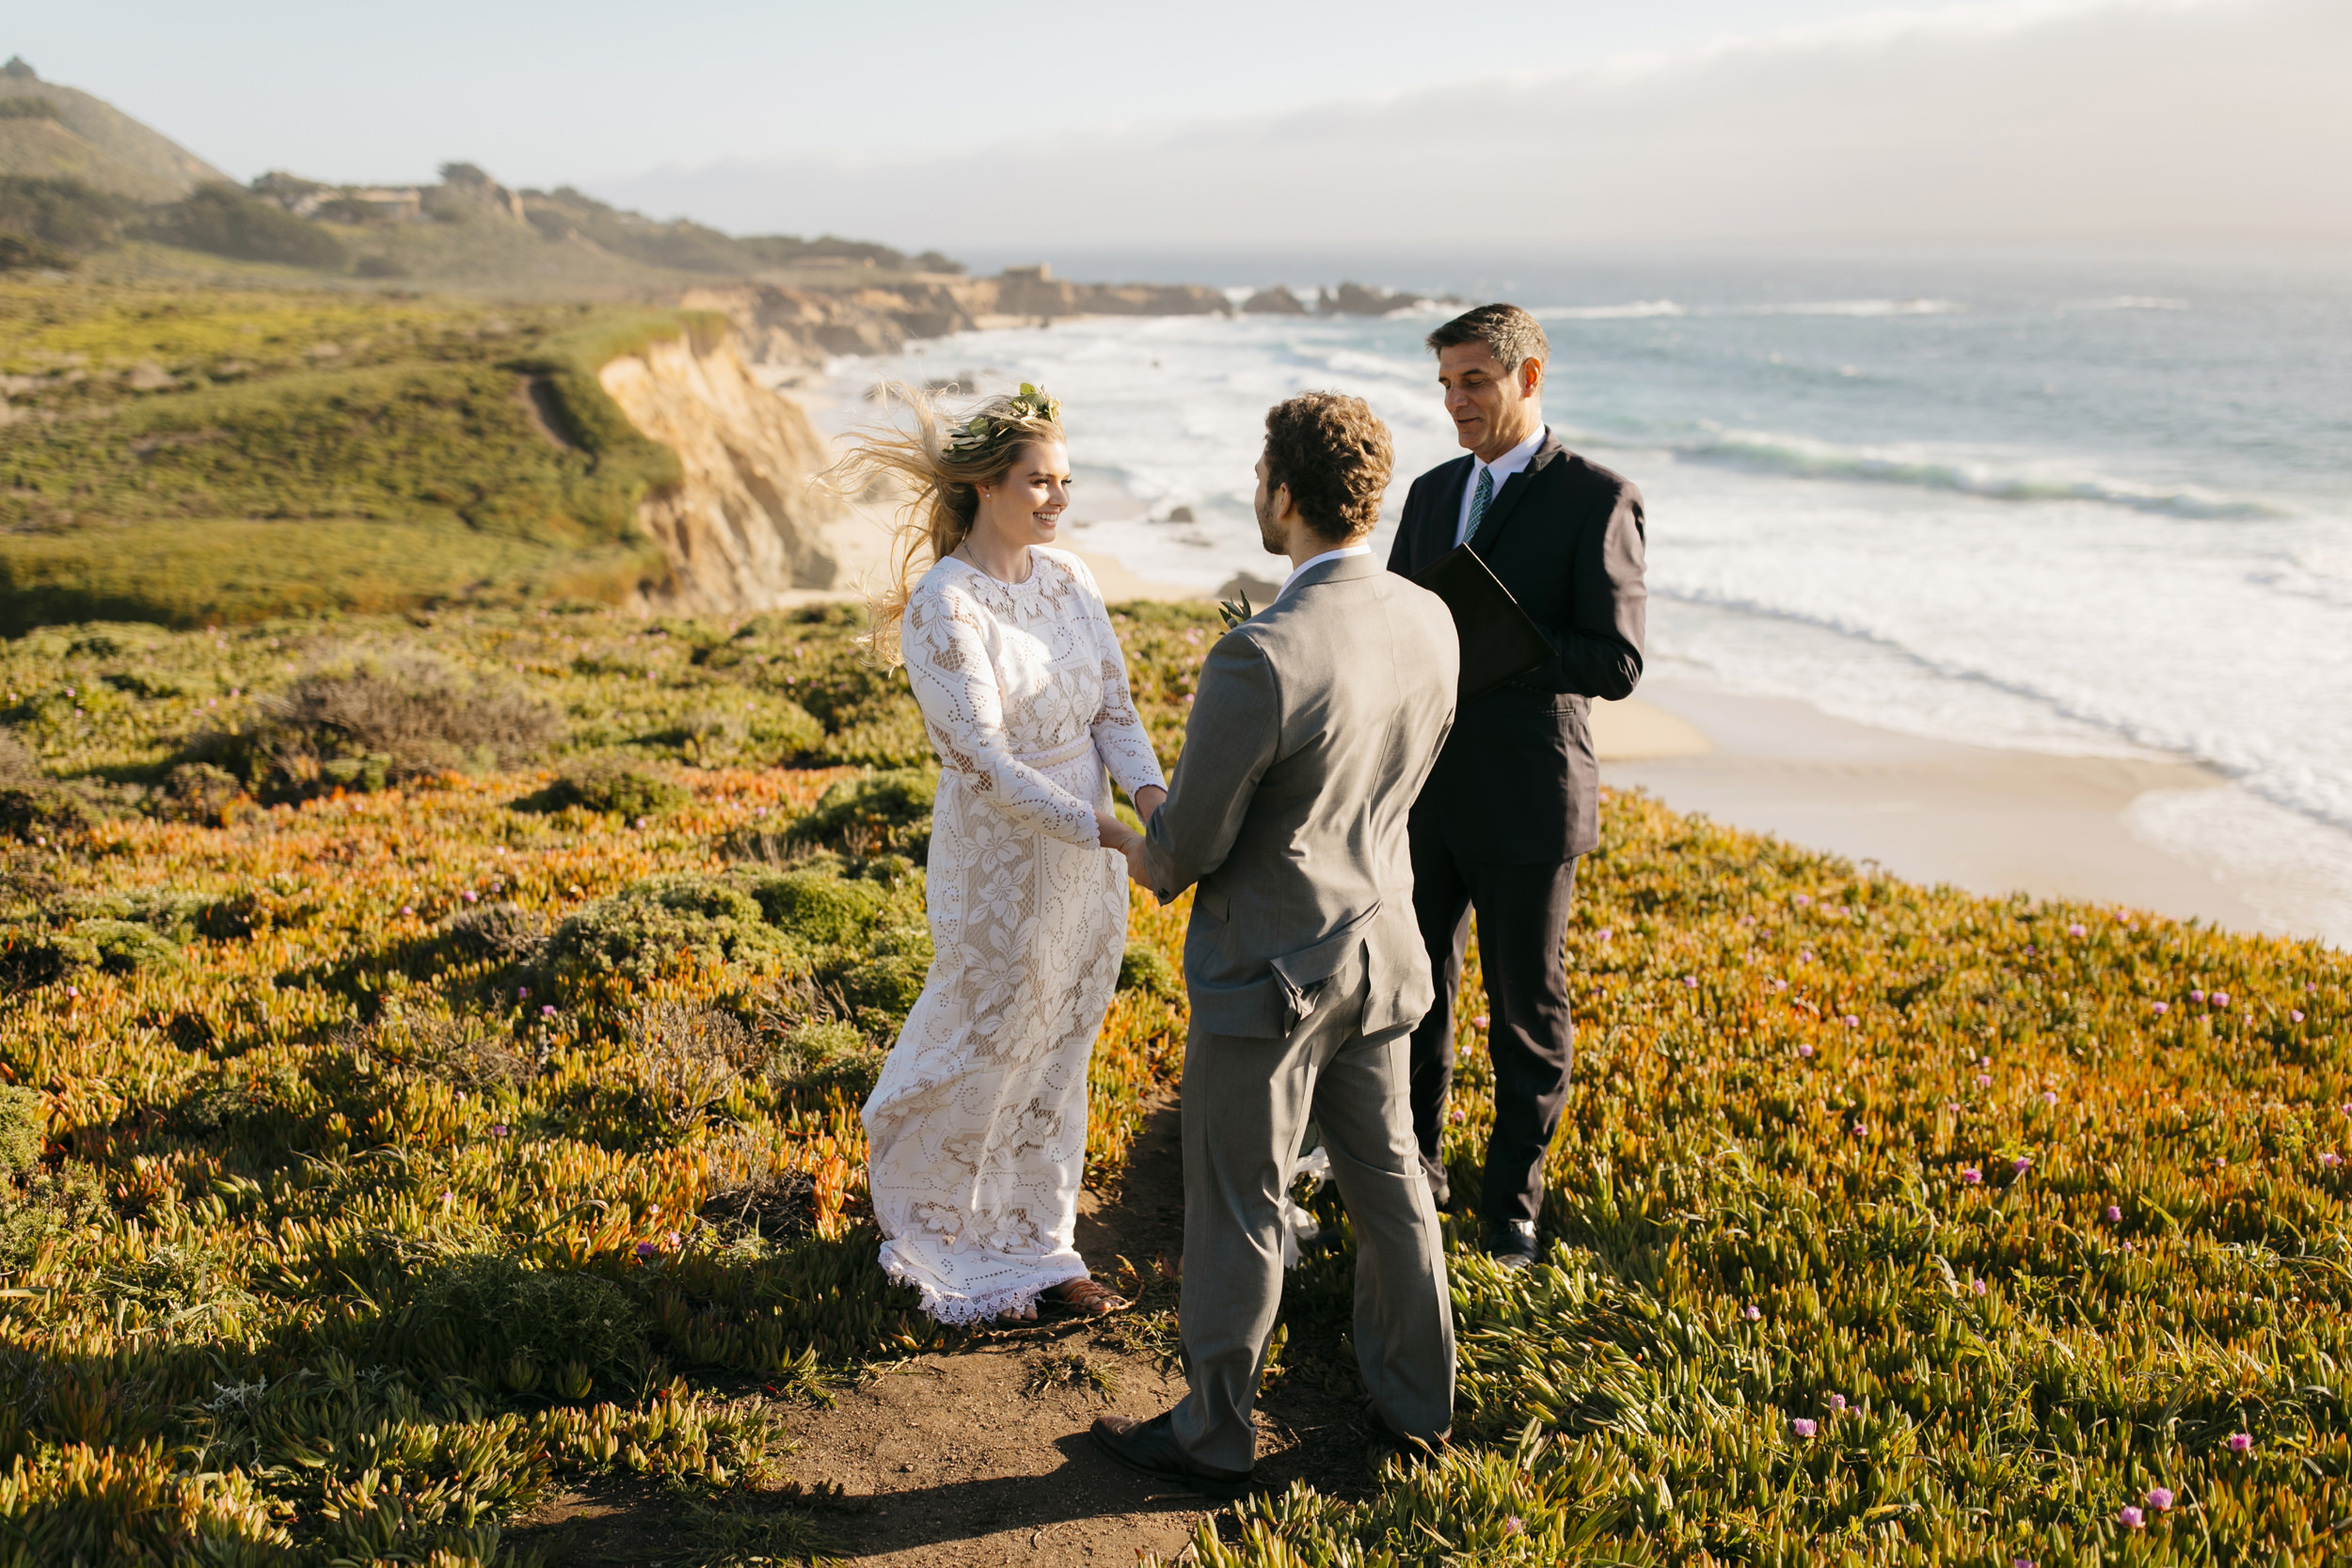 big-sur-elopement-california-adventure-wedding-photographer 106.JPG